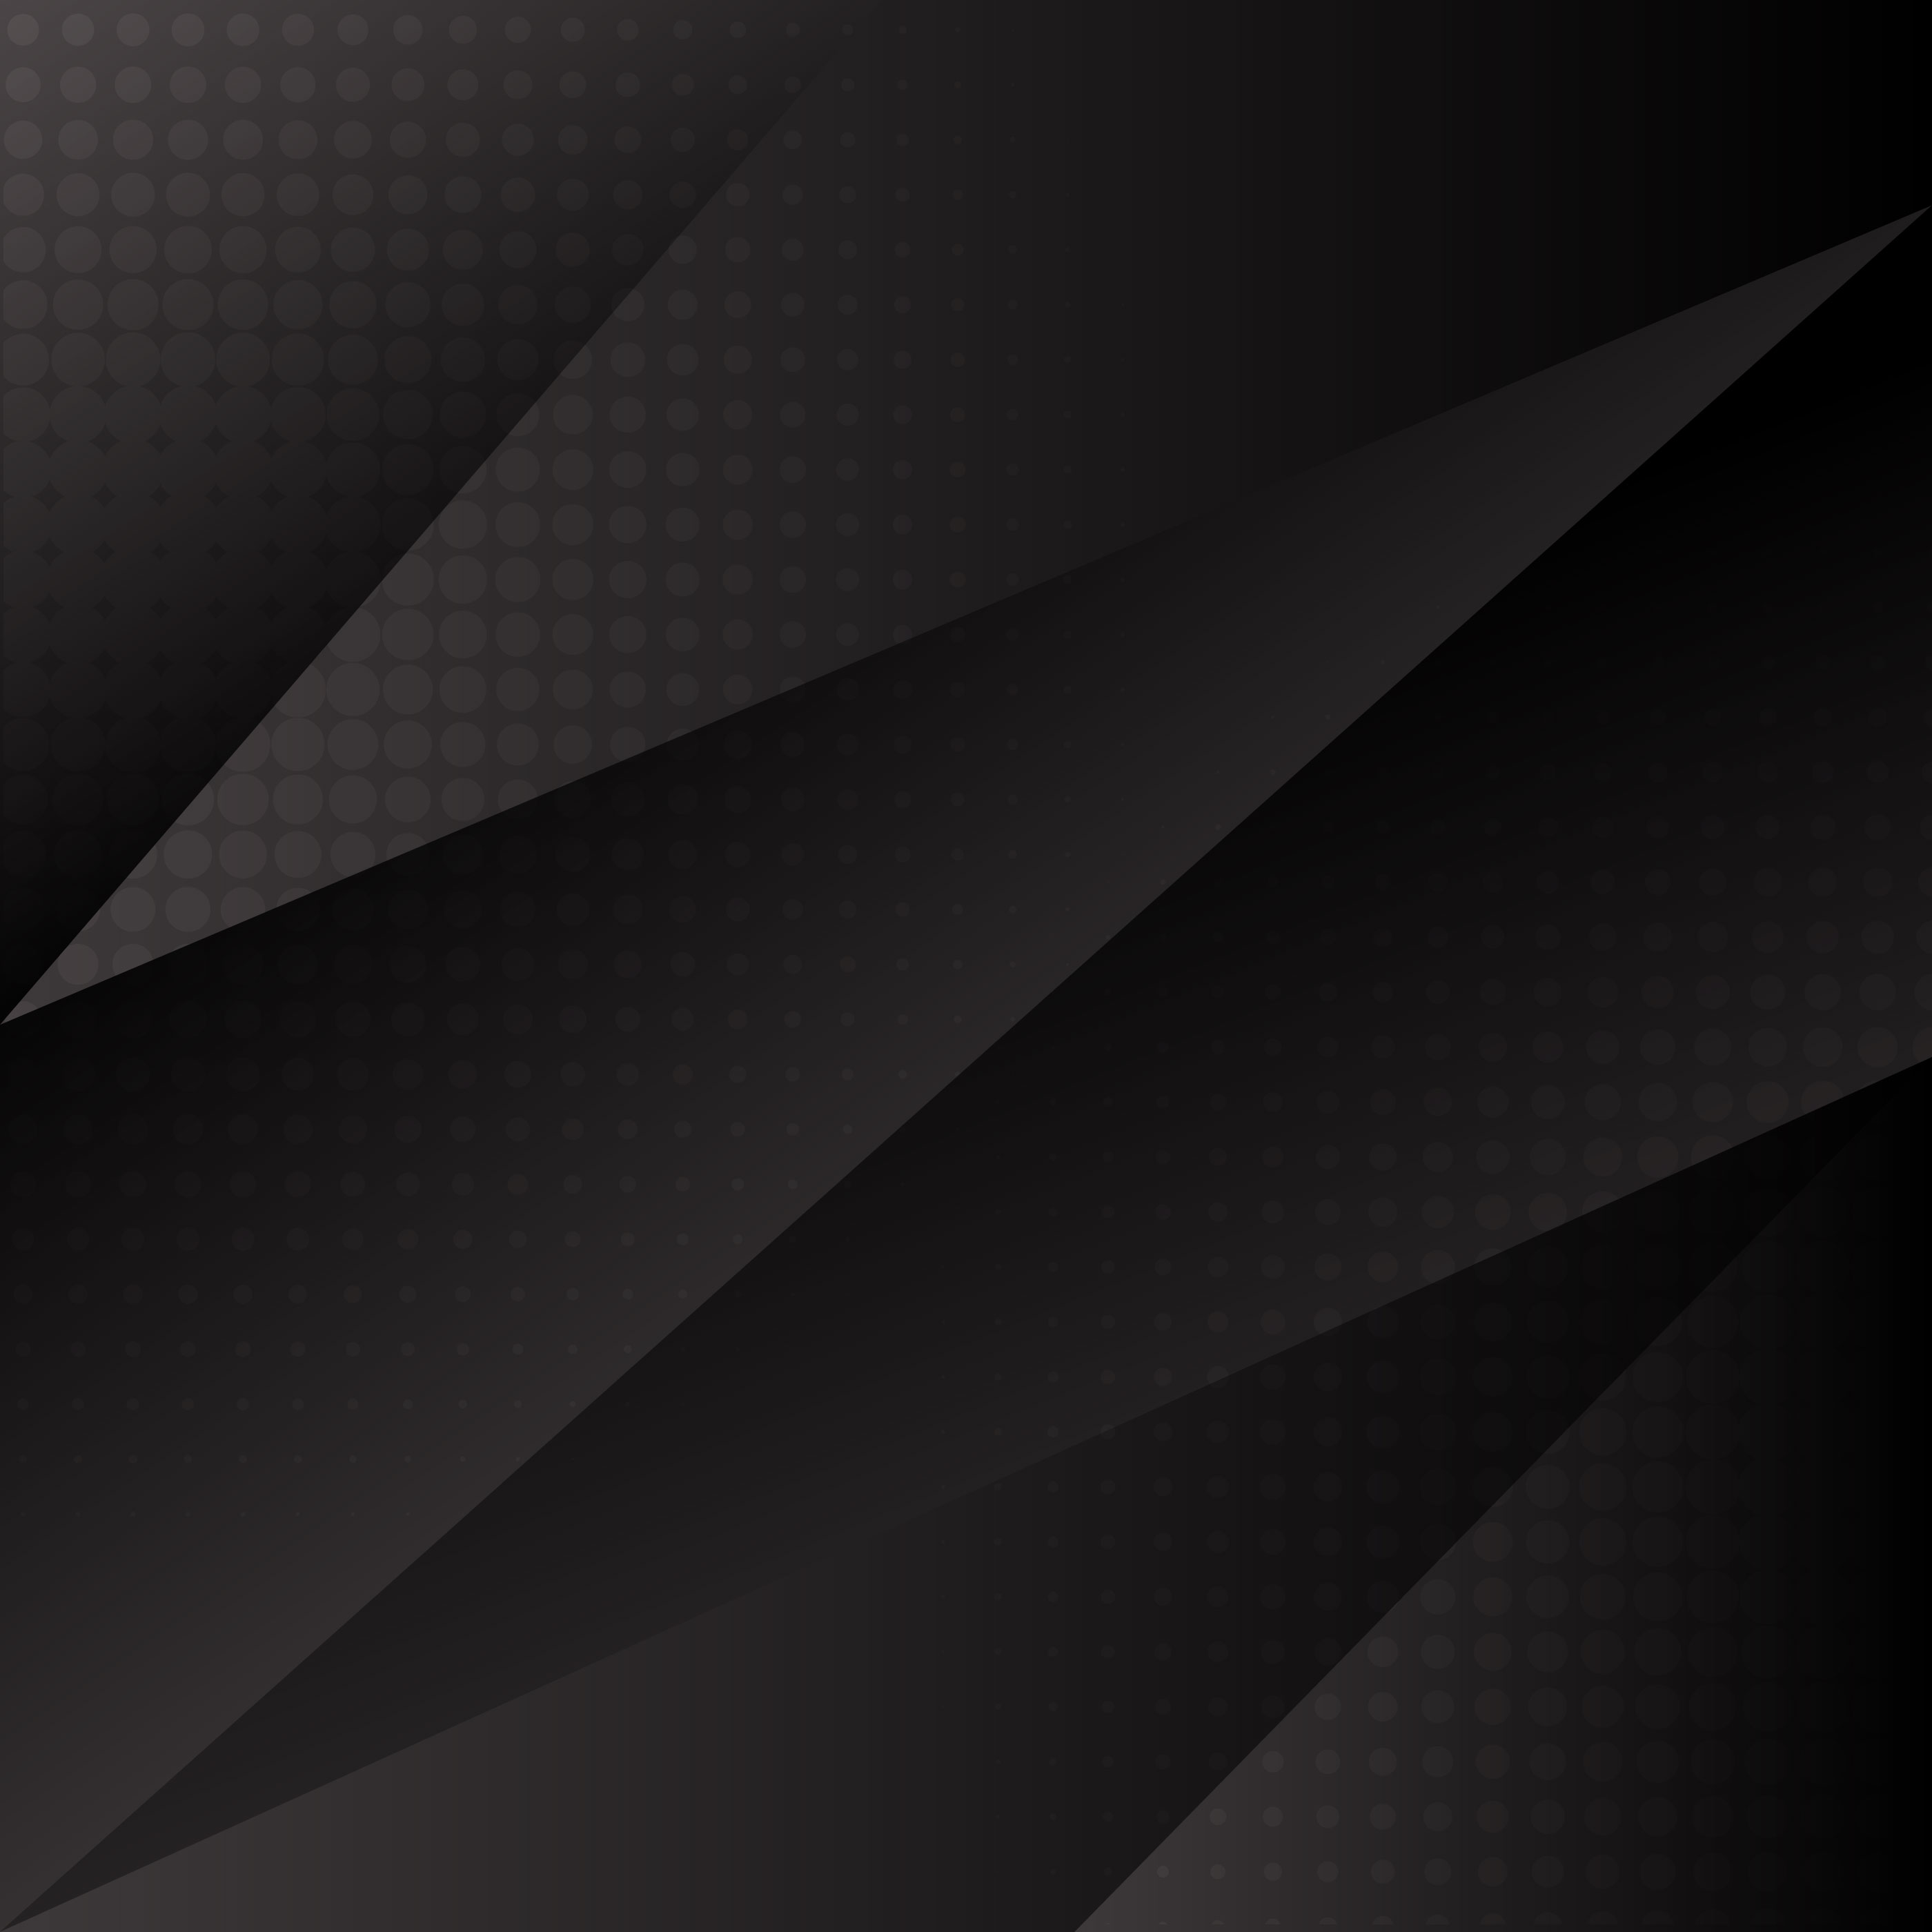 Free vector black abstract background with triangles - Black abstract background ...